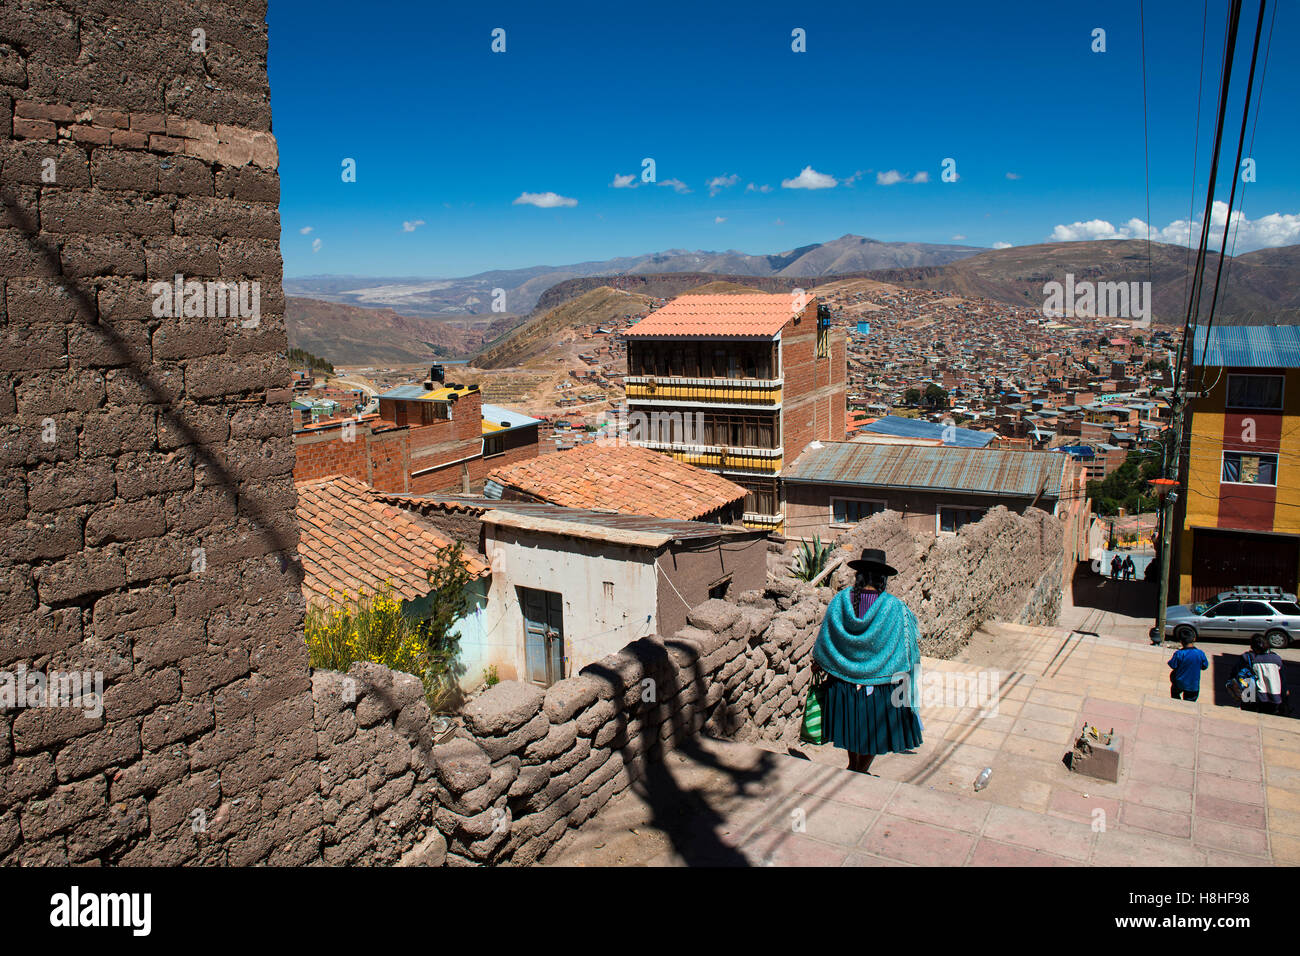 Potosi, Bolivia - November 29, 2013: Woman wearing traditional clothes in the city of Potosi in Bolivia. - Stock Image